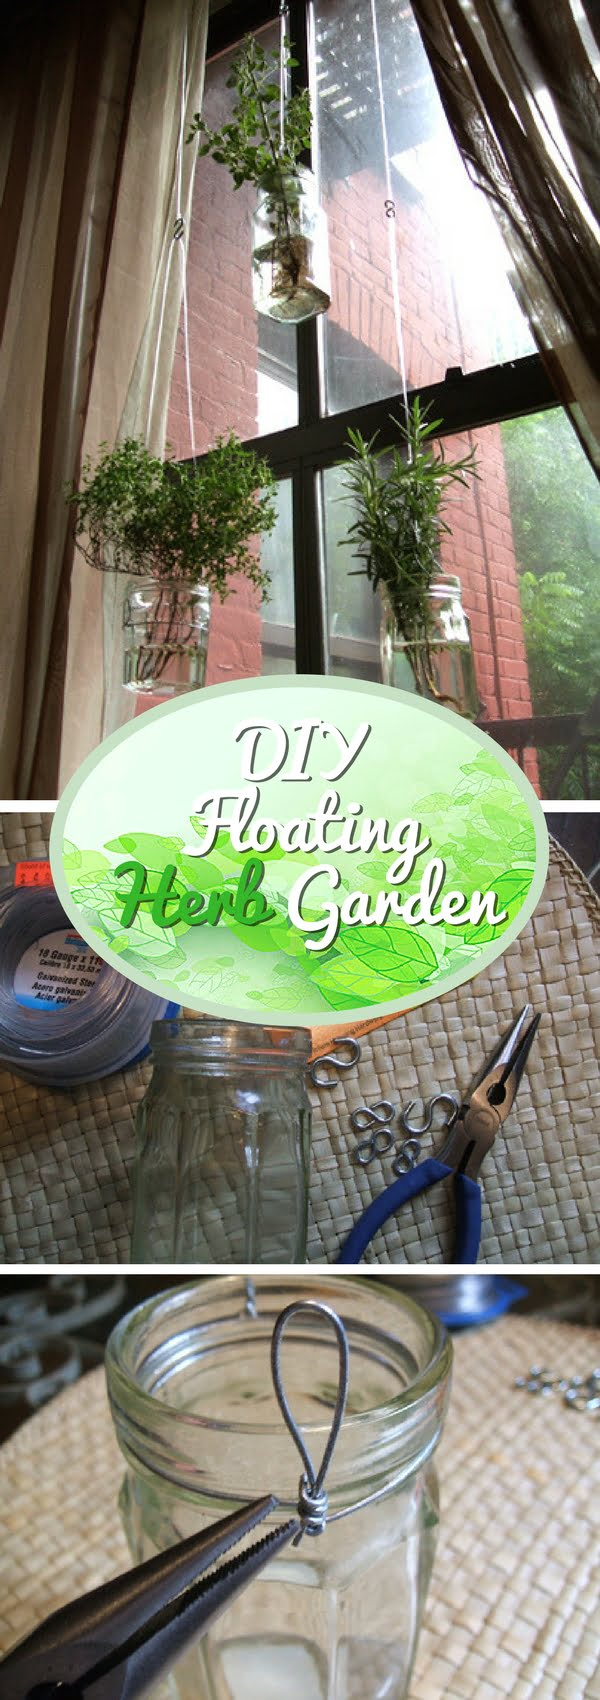 How to make this DIY float herb garden